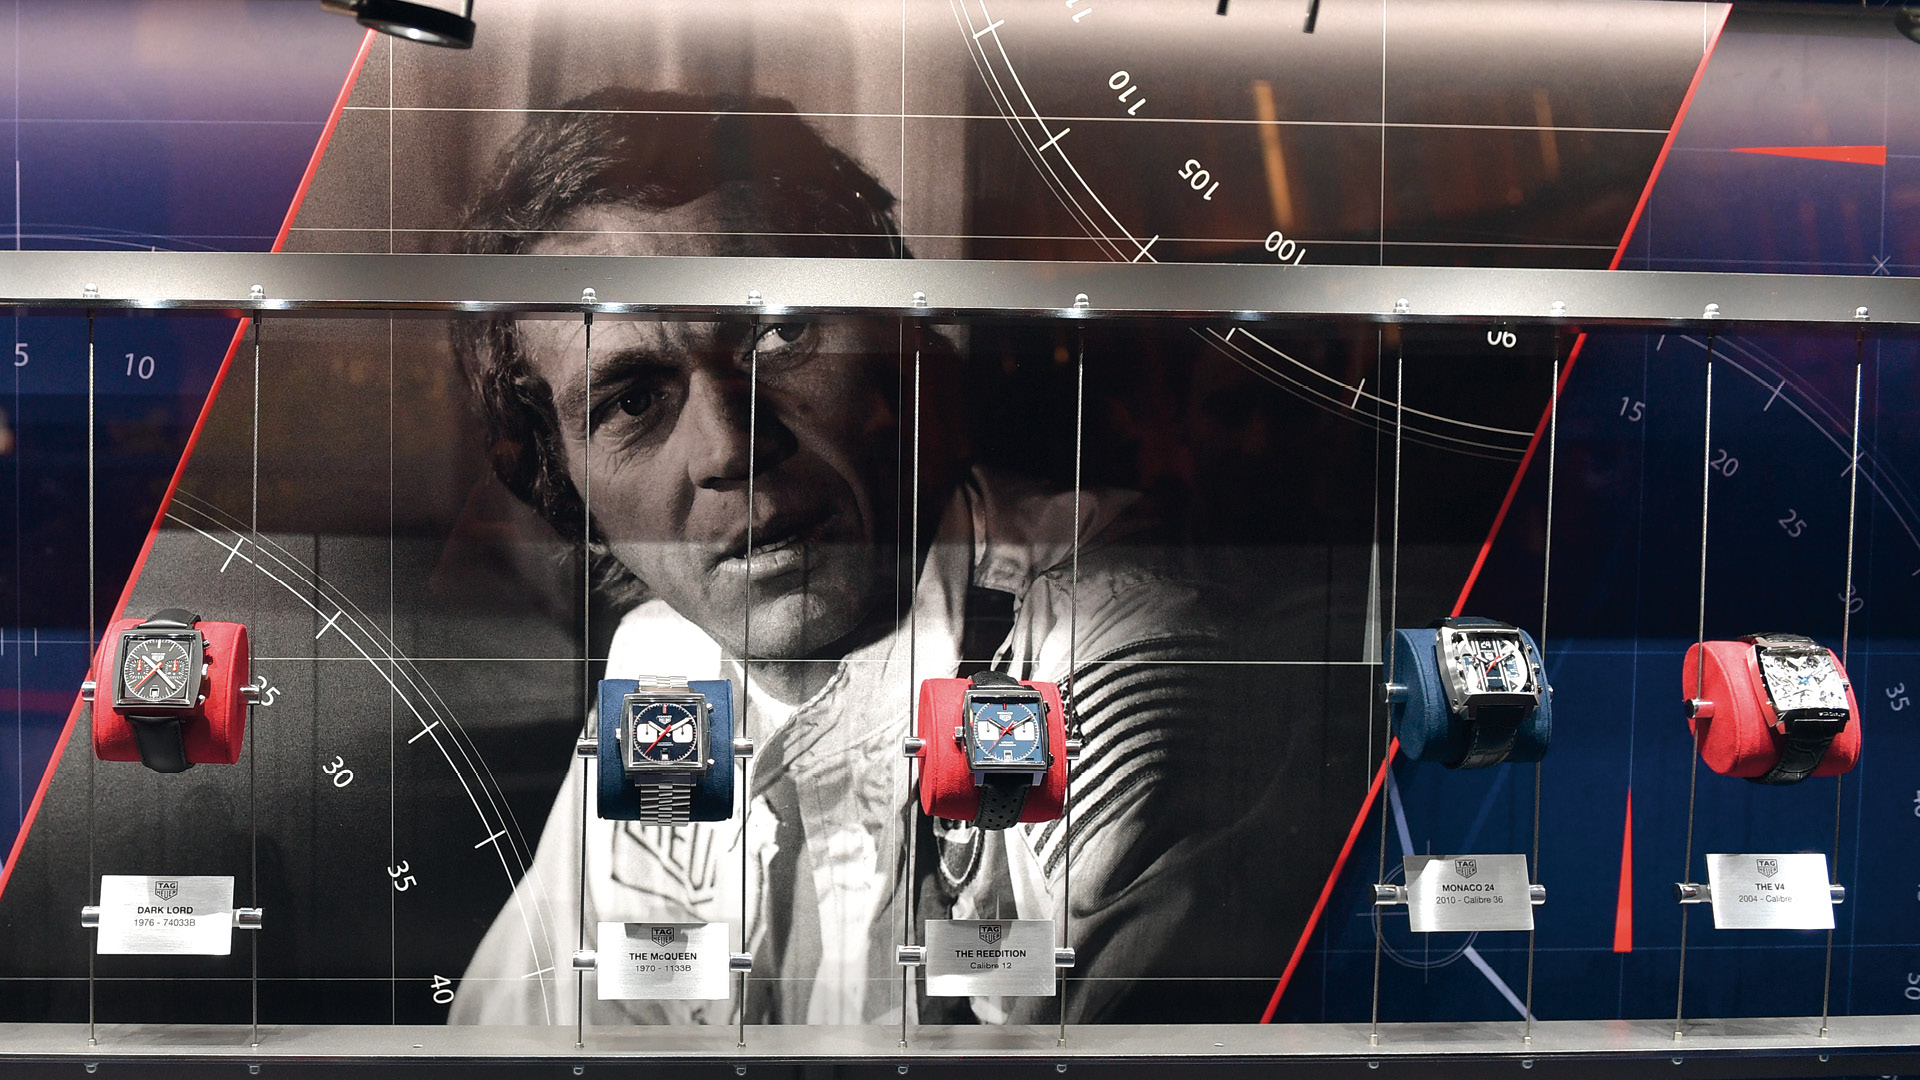 TAG Heuer Monaco display at Baselworld 2019, actor Steve McQueen in the background